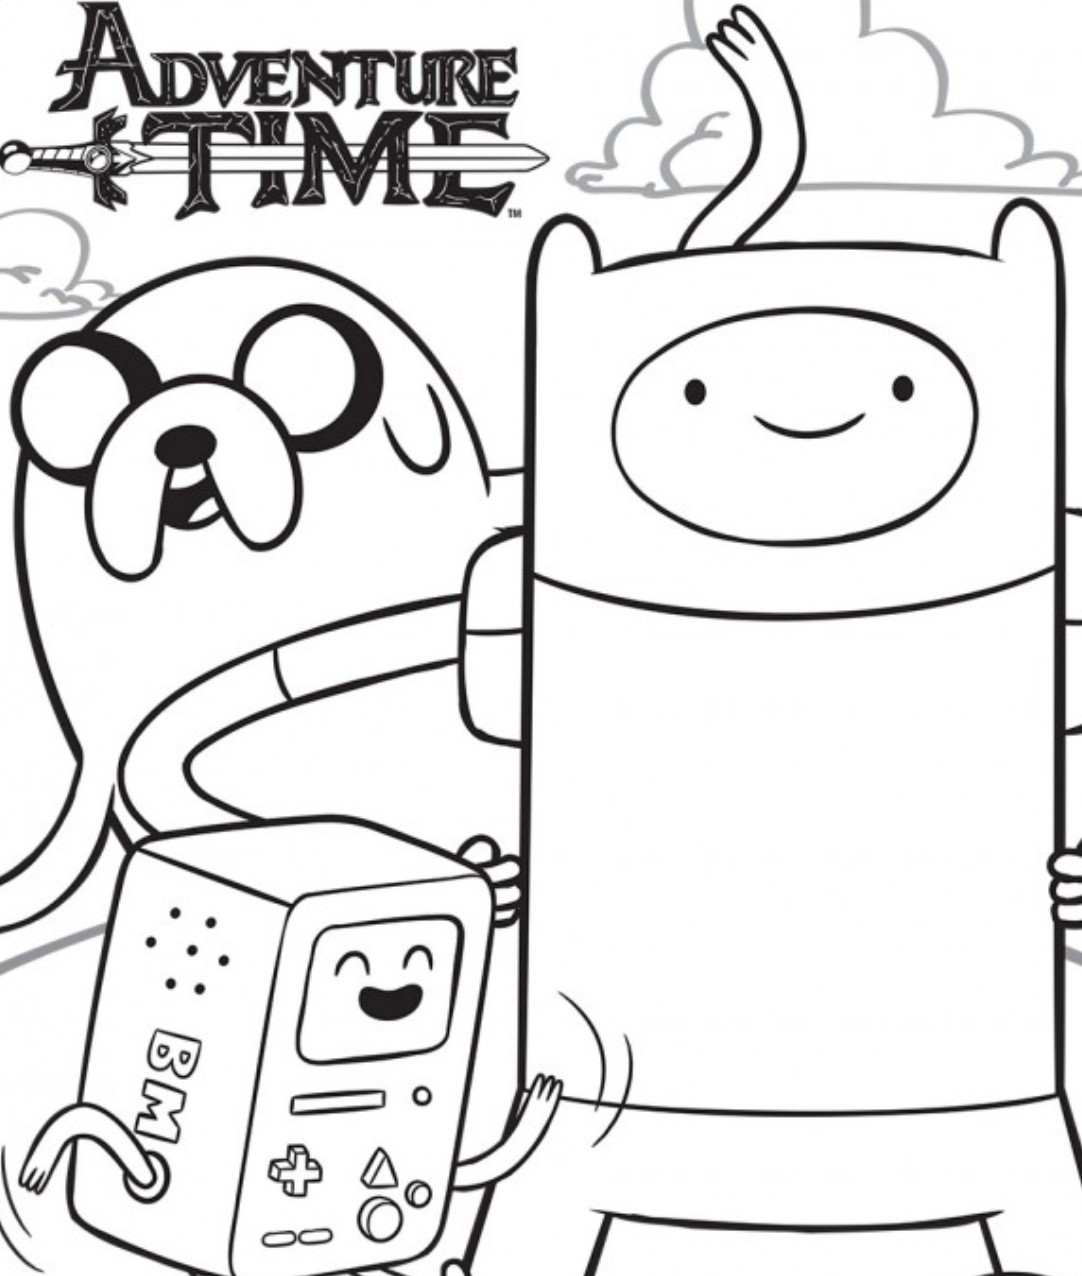 adventure time coloring pages - Printable Color Pages